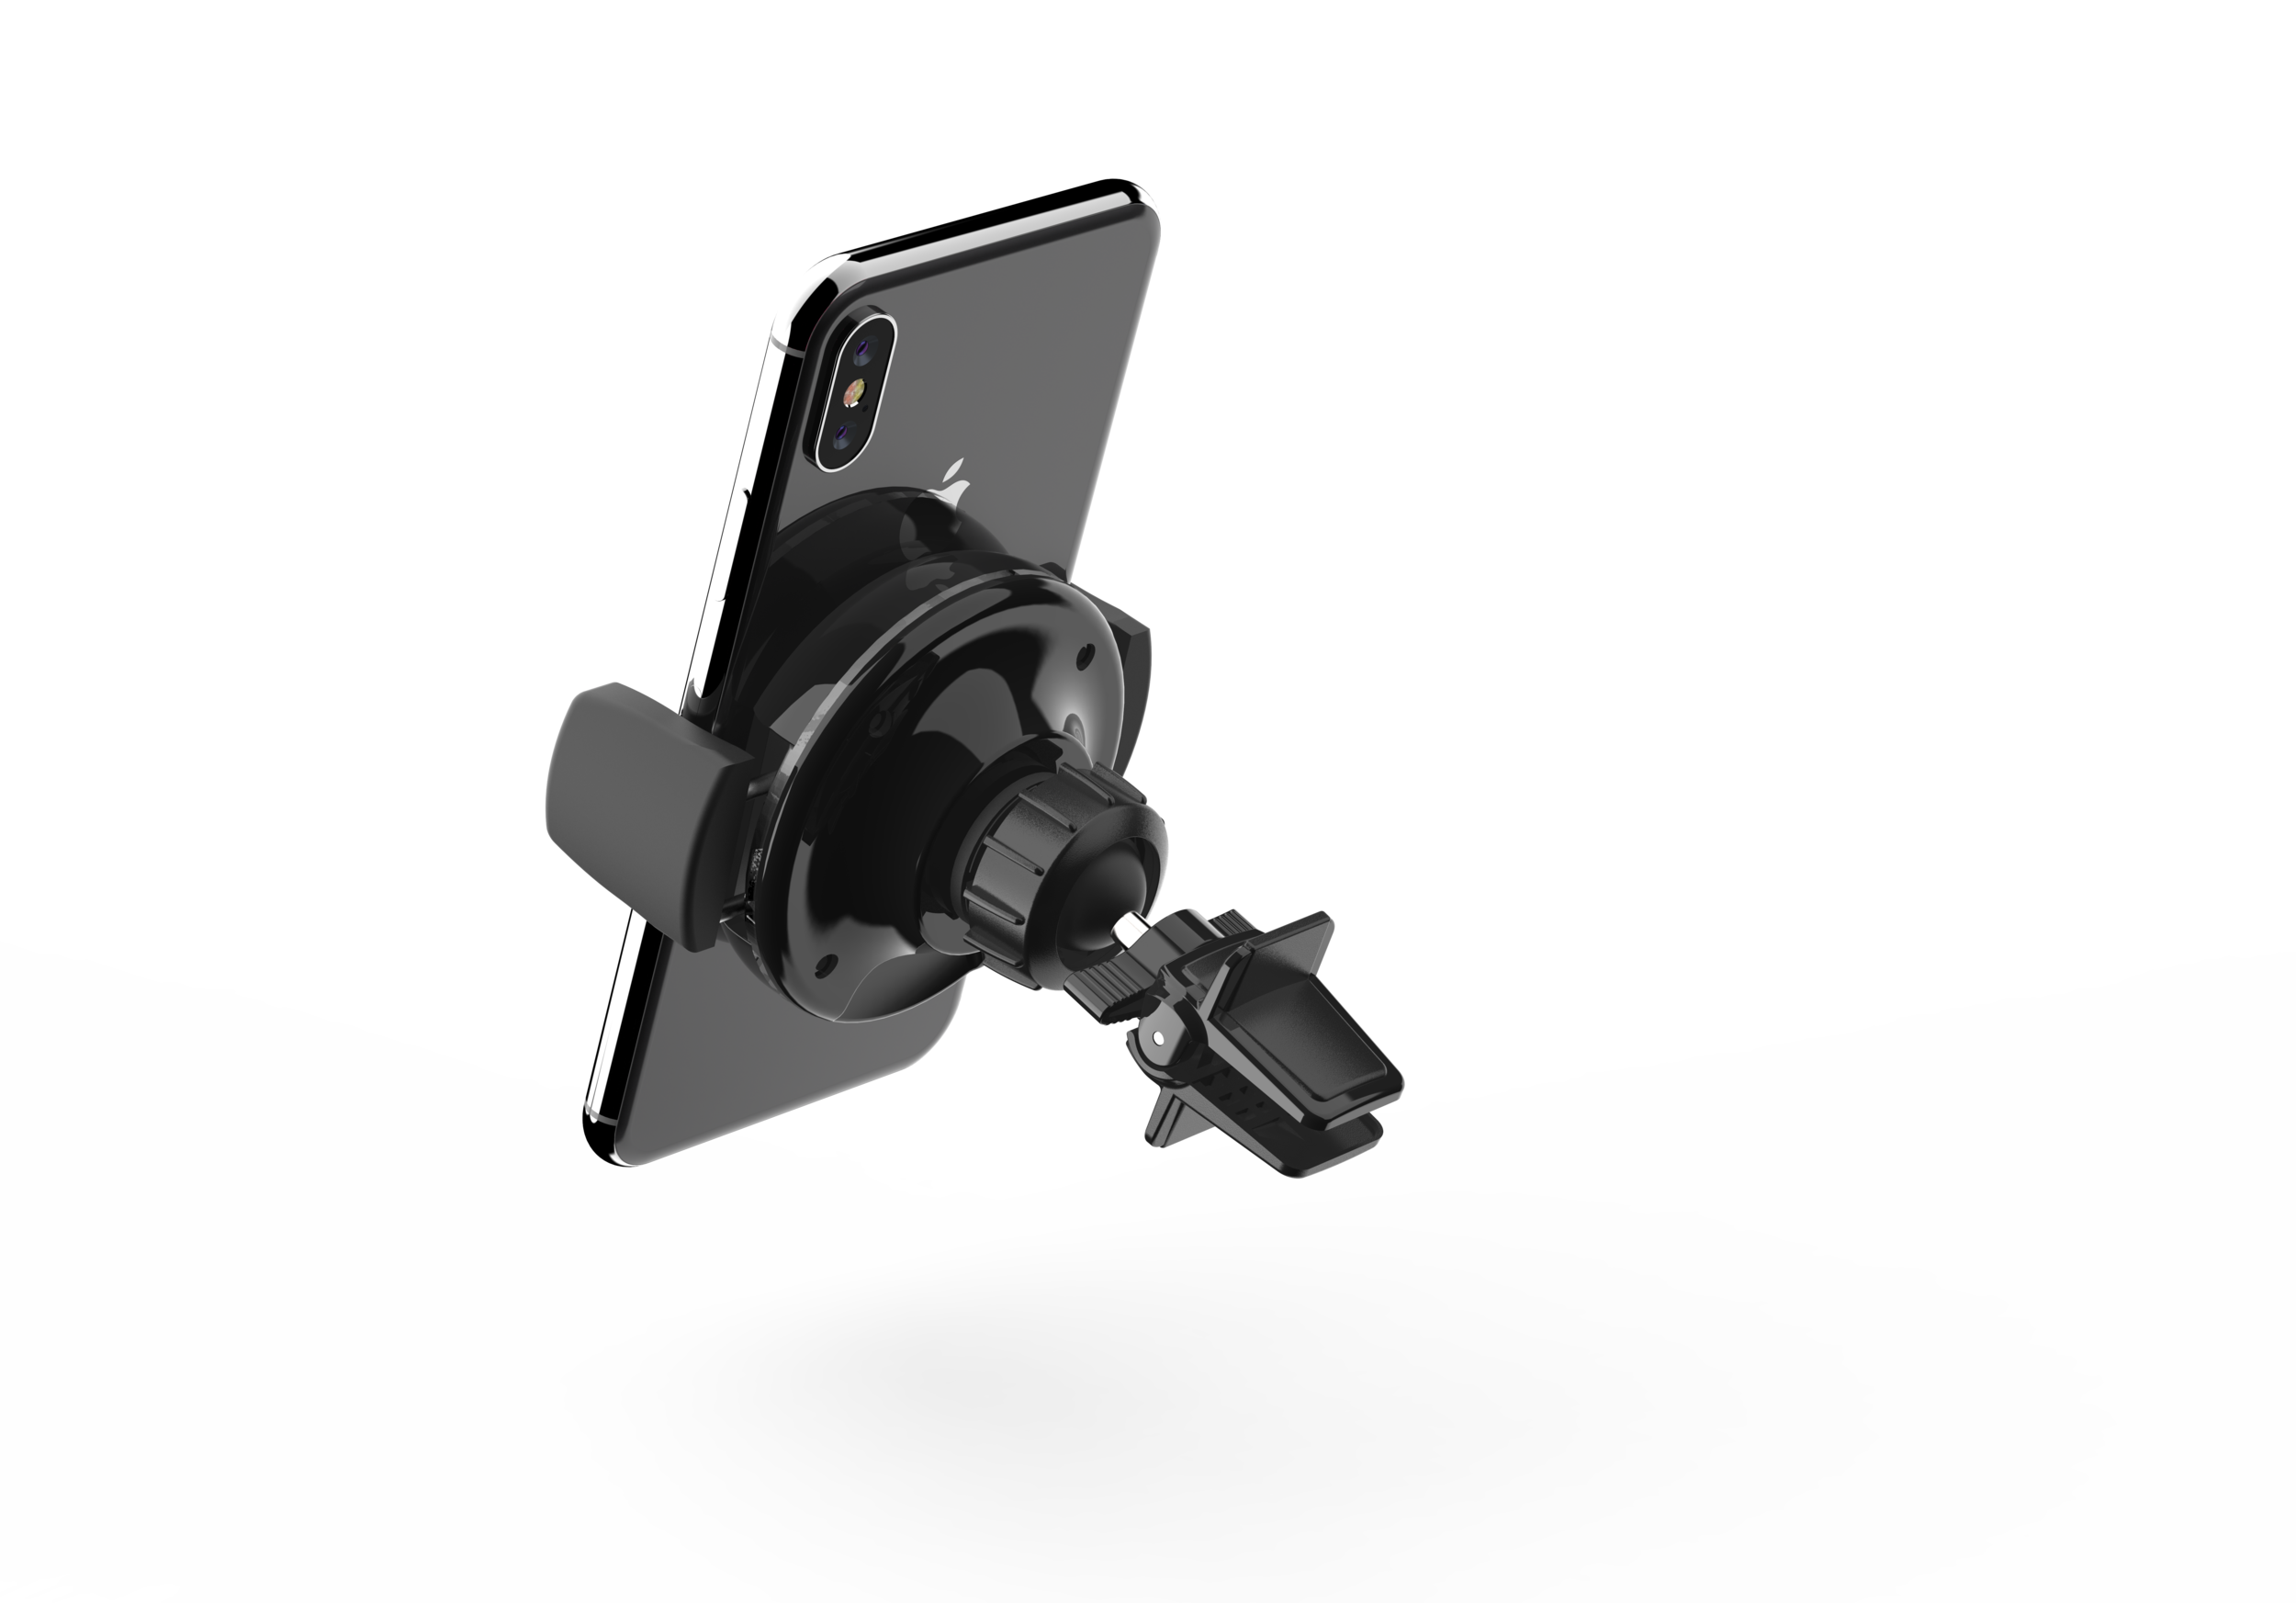 MIC-QI002 5W Wireless Charger Air Vent Car Mount - BLACK Back angle.63.png